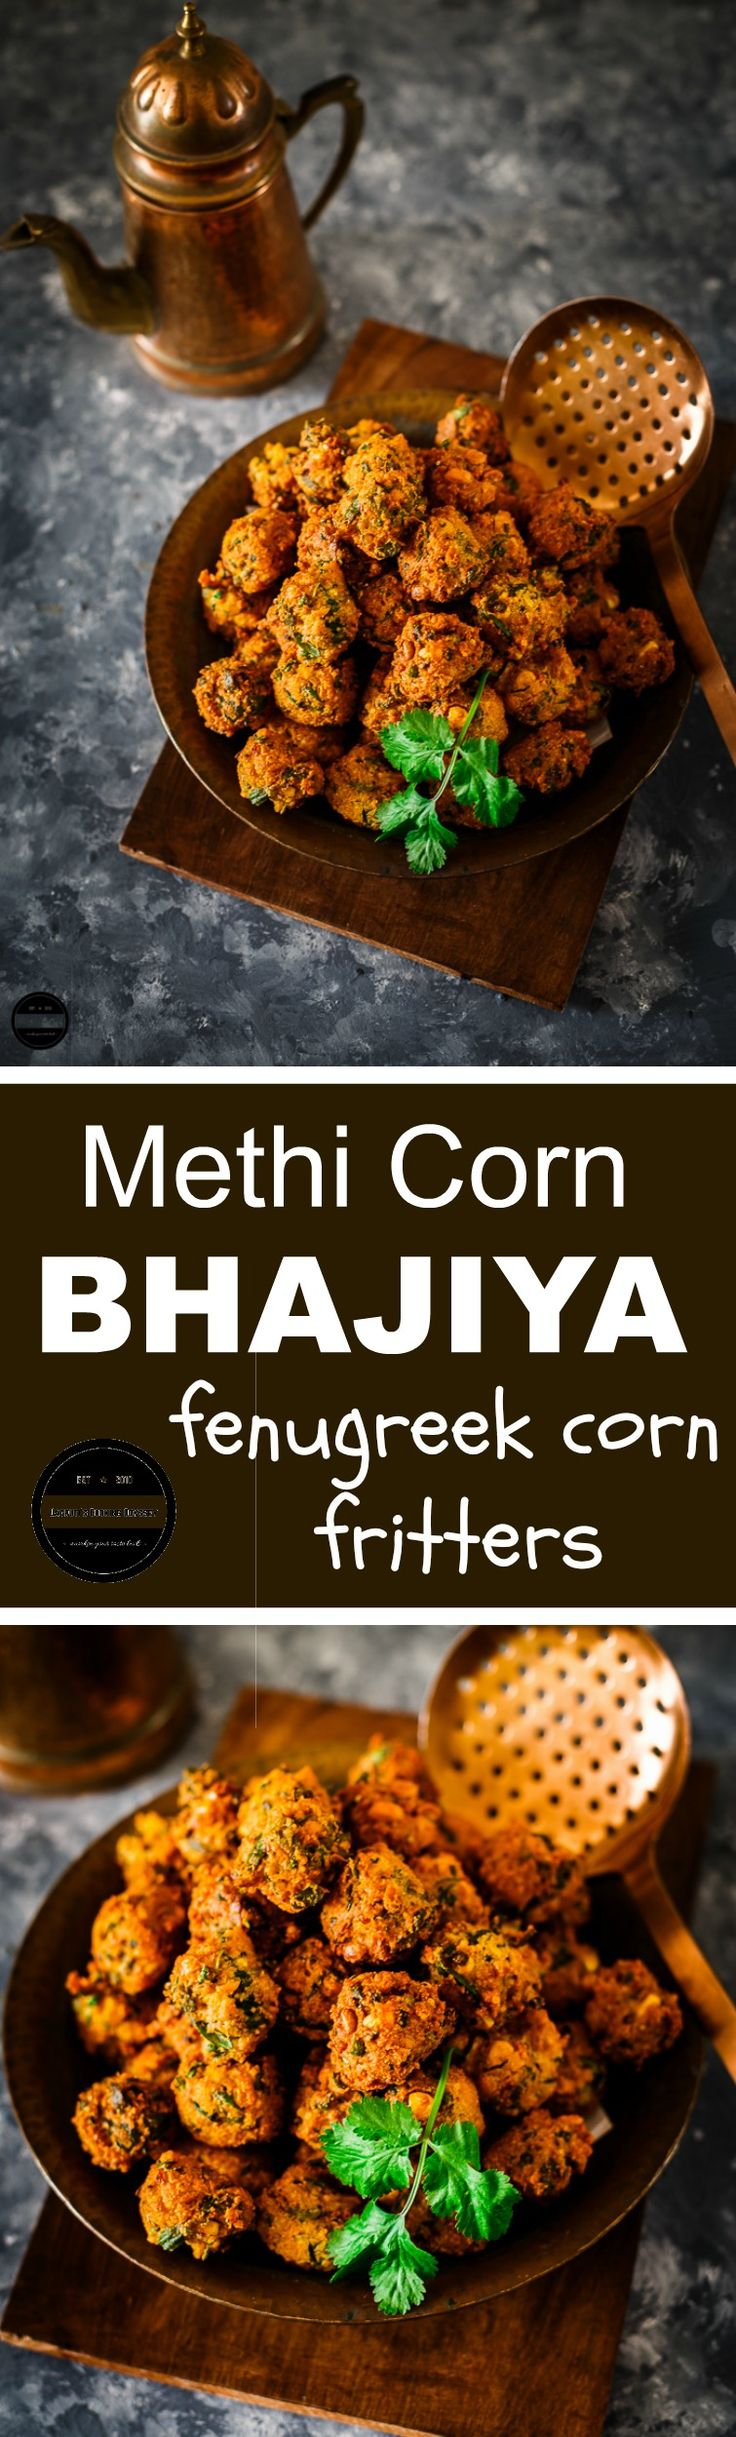 Methi Corn Bhajiya